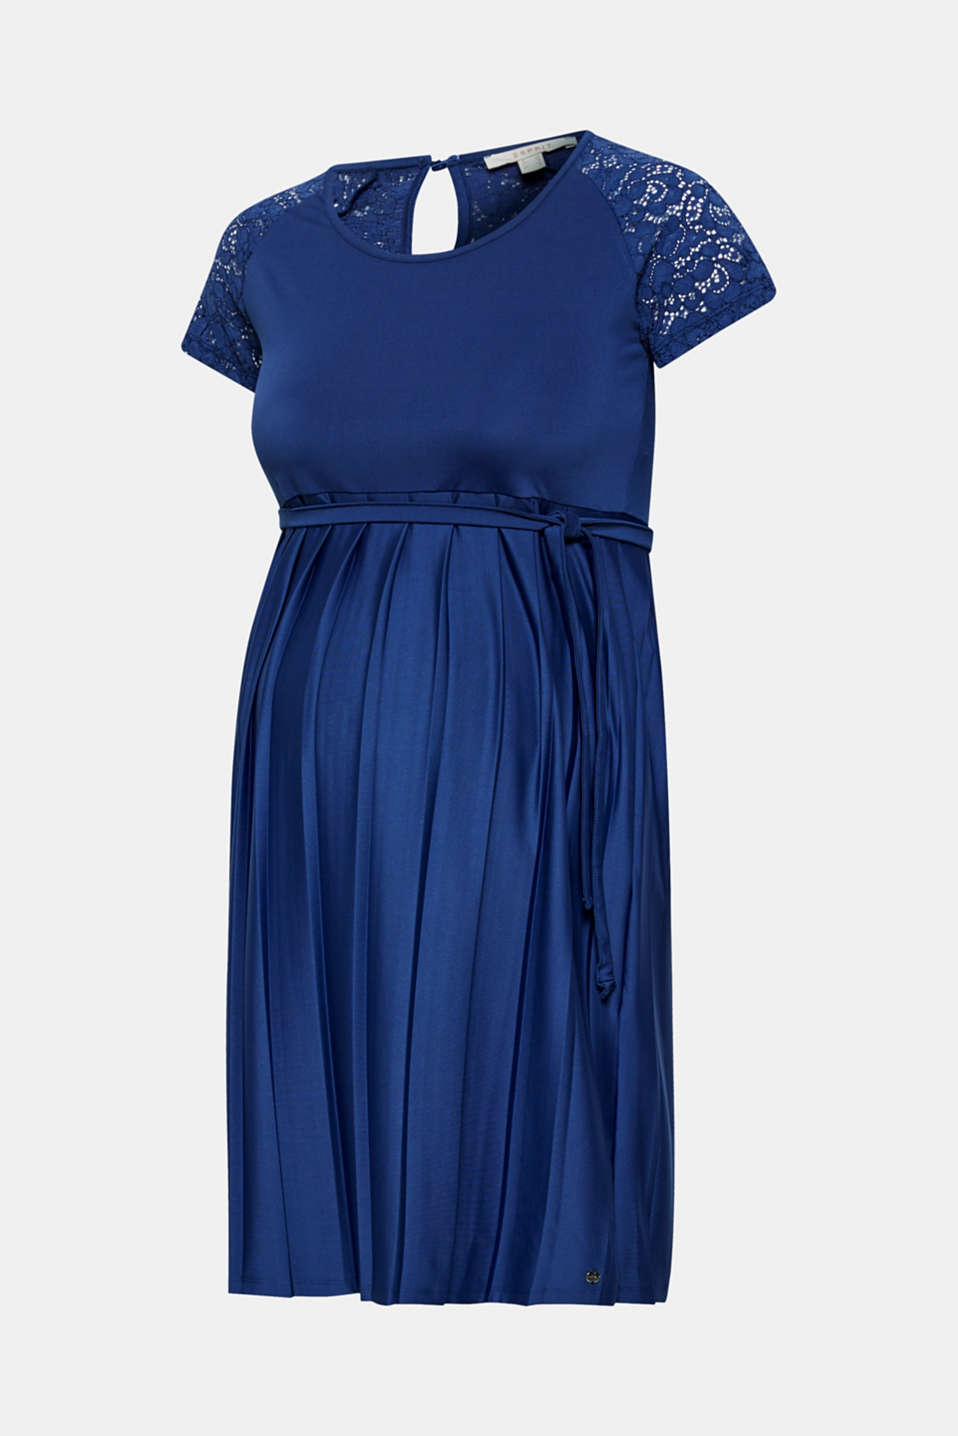 Lace-trimmed dress with a pleated skirt, LCDARK BLUE, detail image number 7